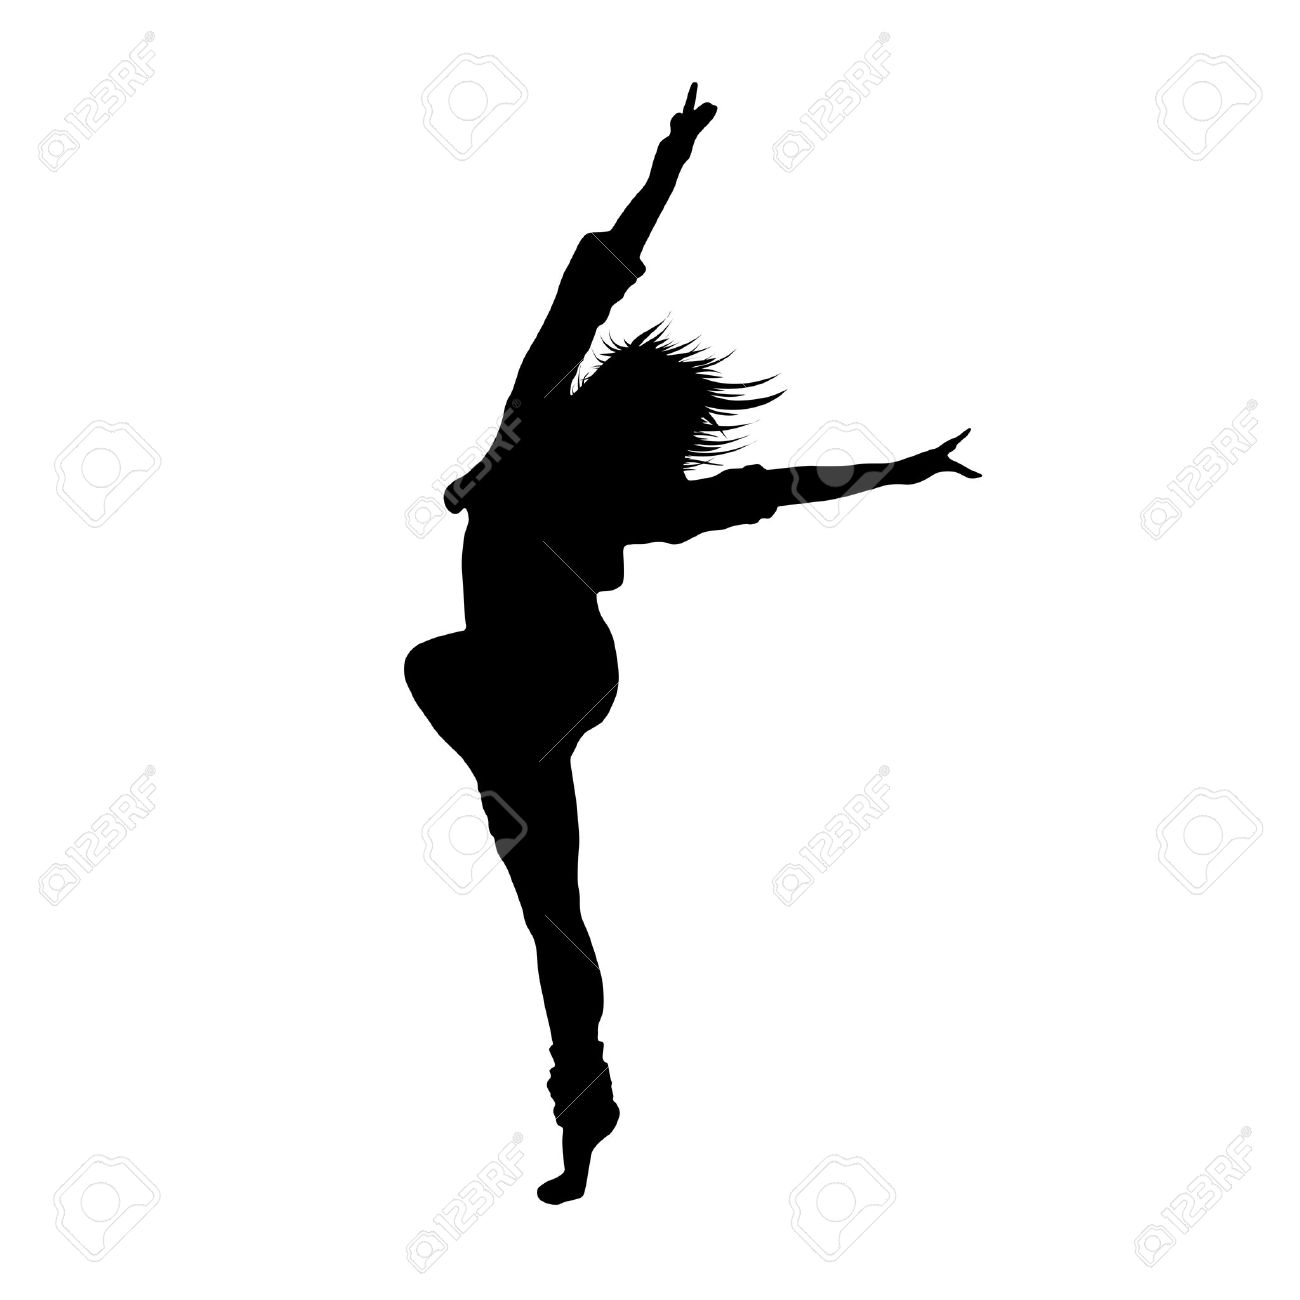 Public domain clipart jumping leaping fat woman lady picture download Dancer Jumping Silhouette | Free download best Dancer ... picture download